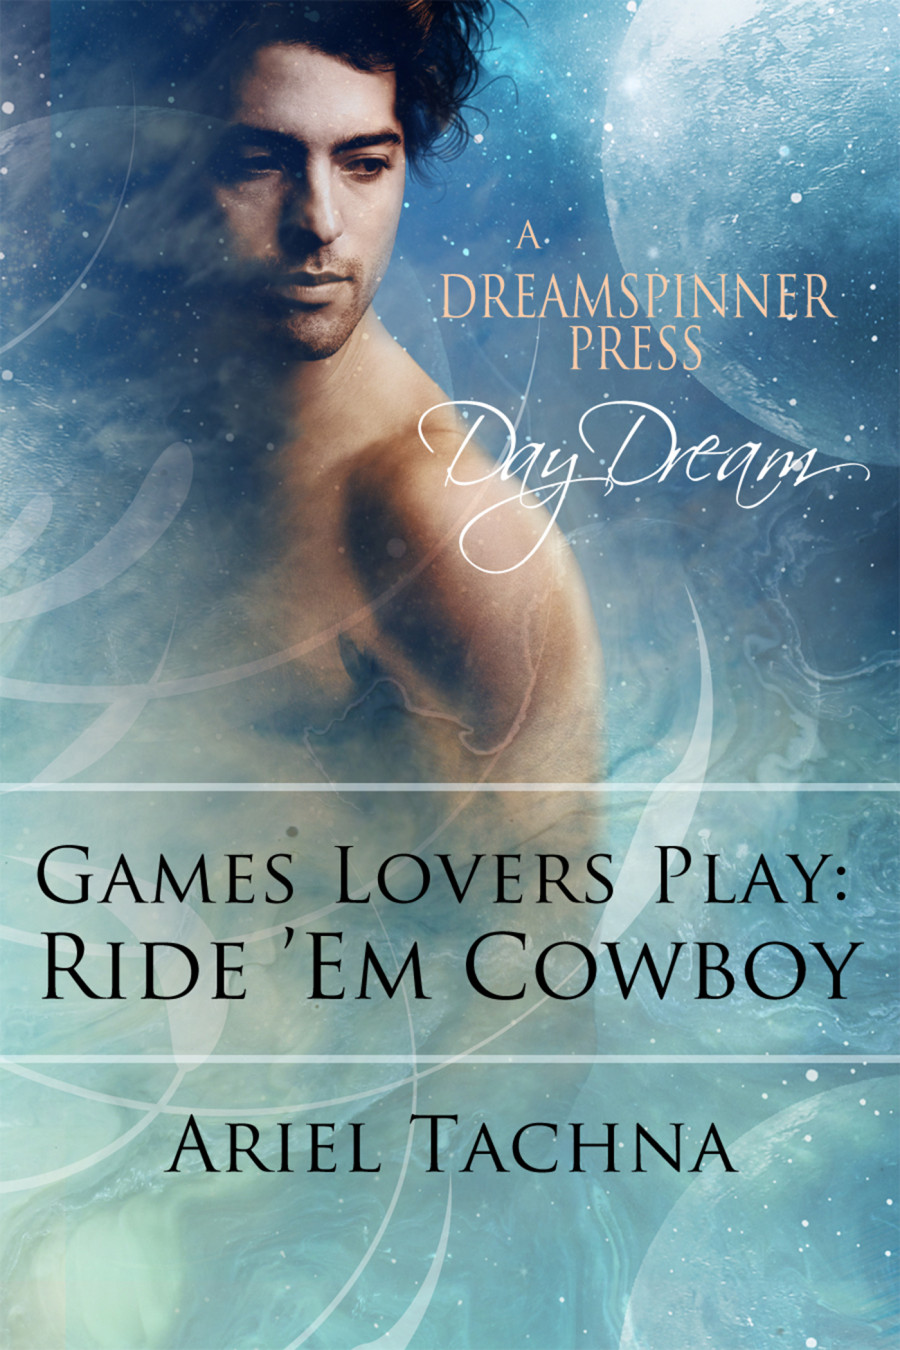 Games Lovers Play: Ride 'em Cowboy